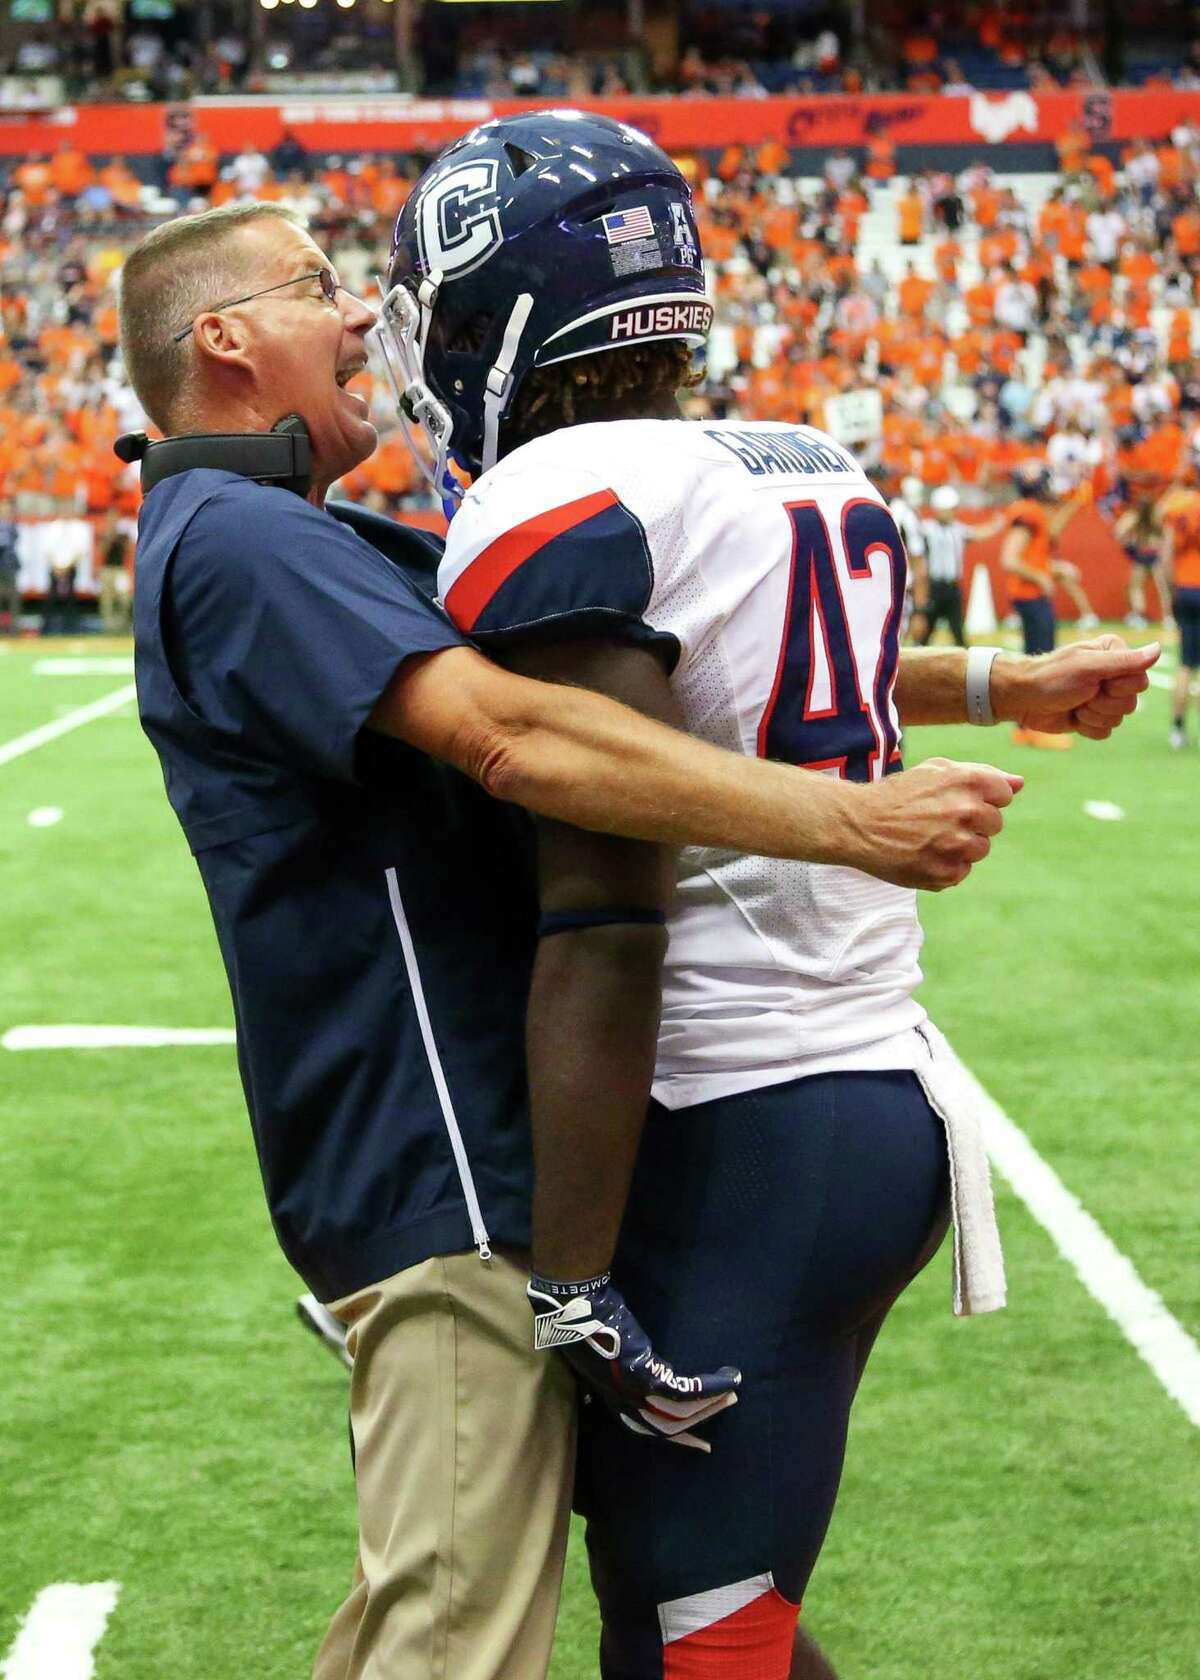 UConn coach Randy Edsall reacts to a missed tackle with player T.J. Gardner following a special teams touchdown by the Syracuse Orange during the third quarter on Sept. 22.